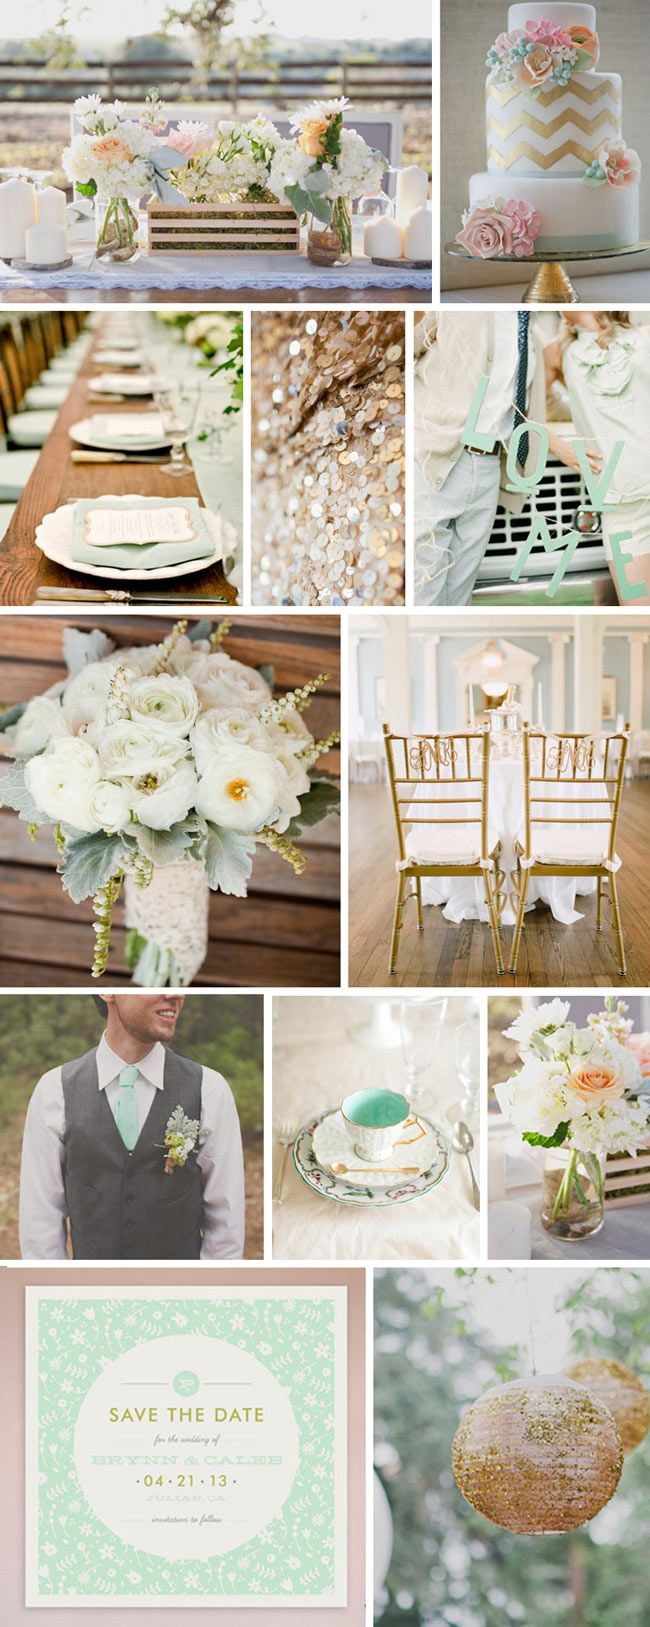 Guest Post: Oh-So-Loverly Color Schemes #3 » The Wedding Suite | Nordstrom.com